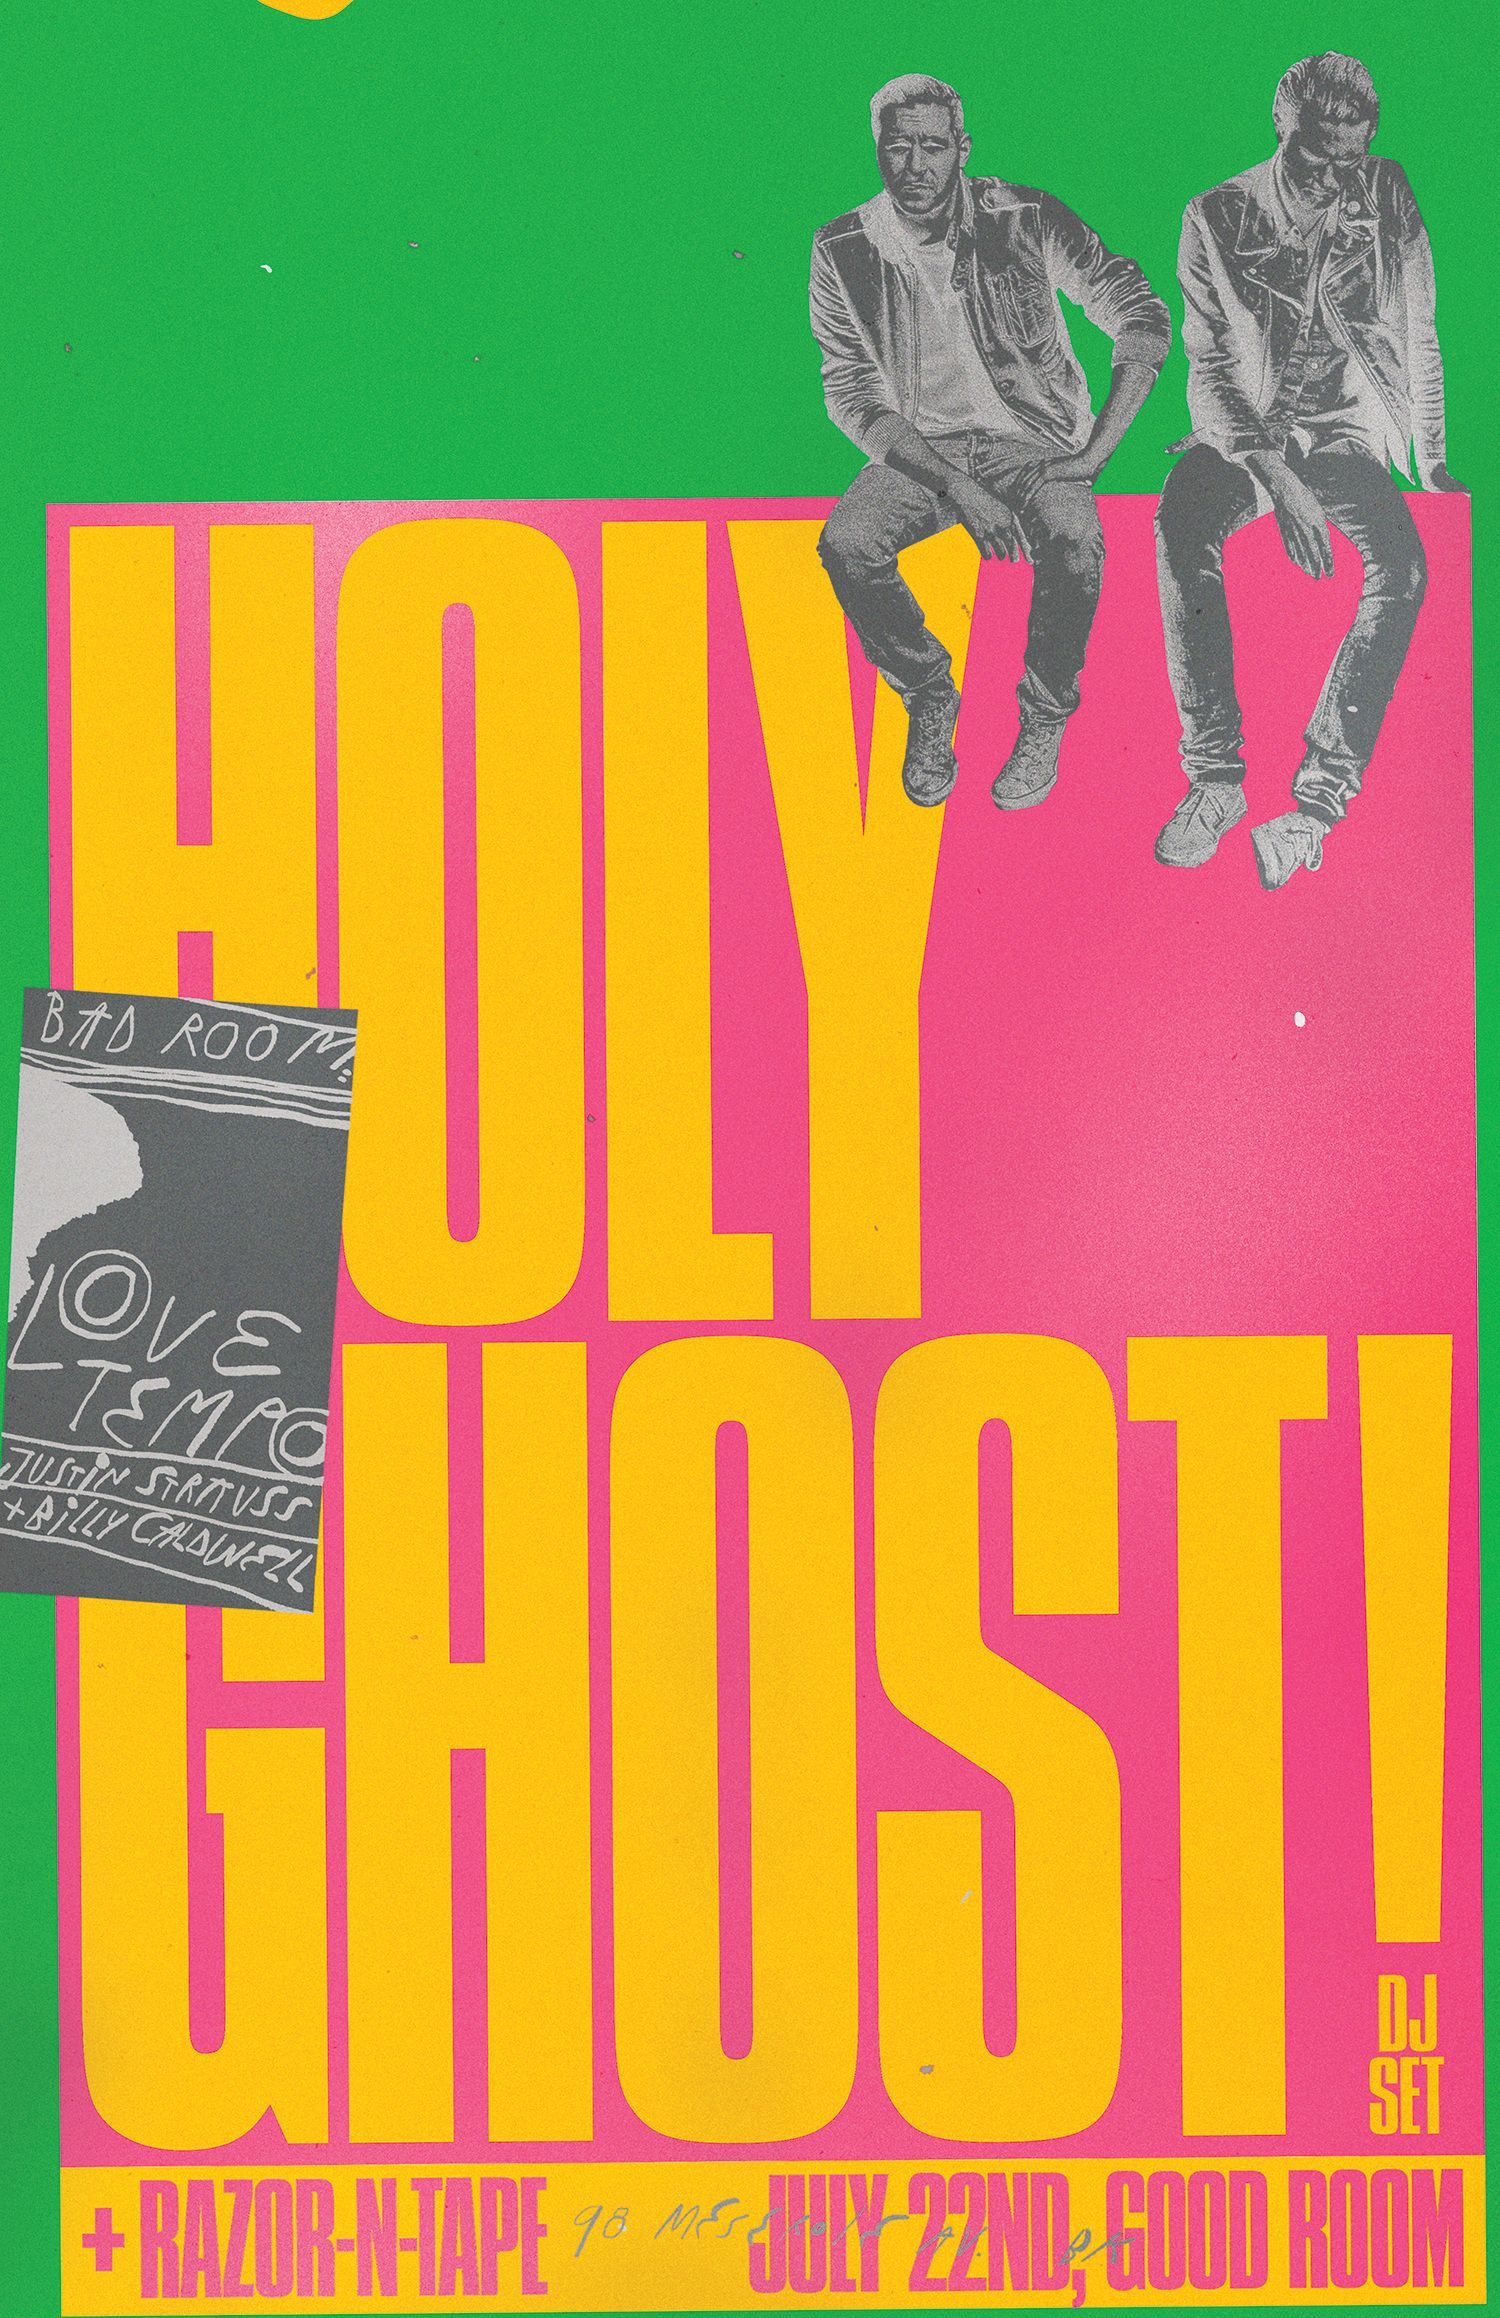 Holy Ghost Braulio Amado Graphic Design Posters Graphic Design Inspiration Typographic Poster